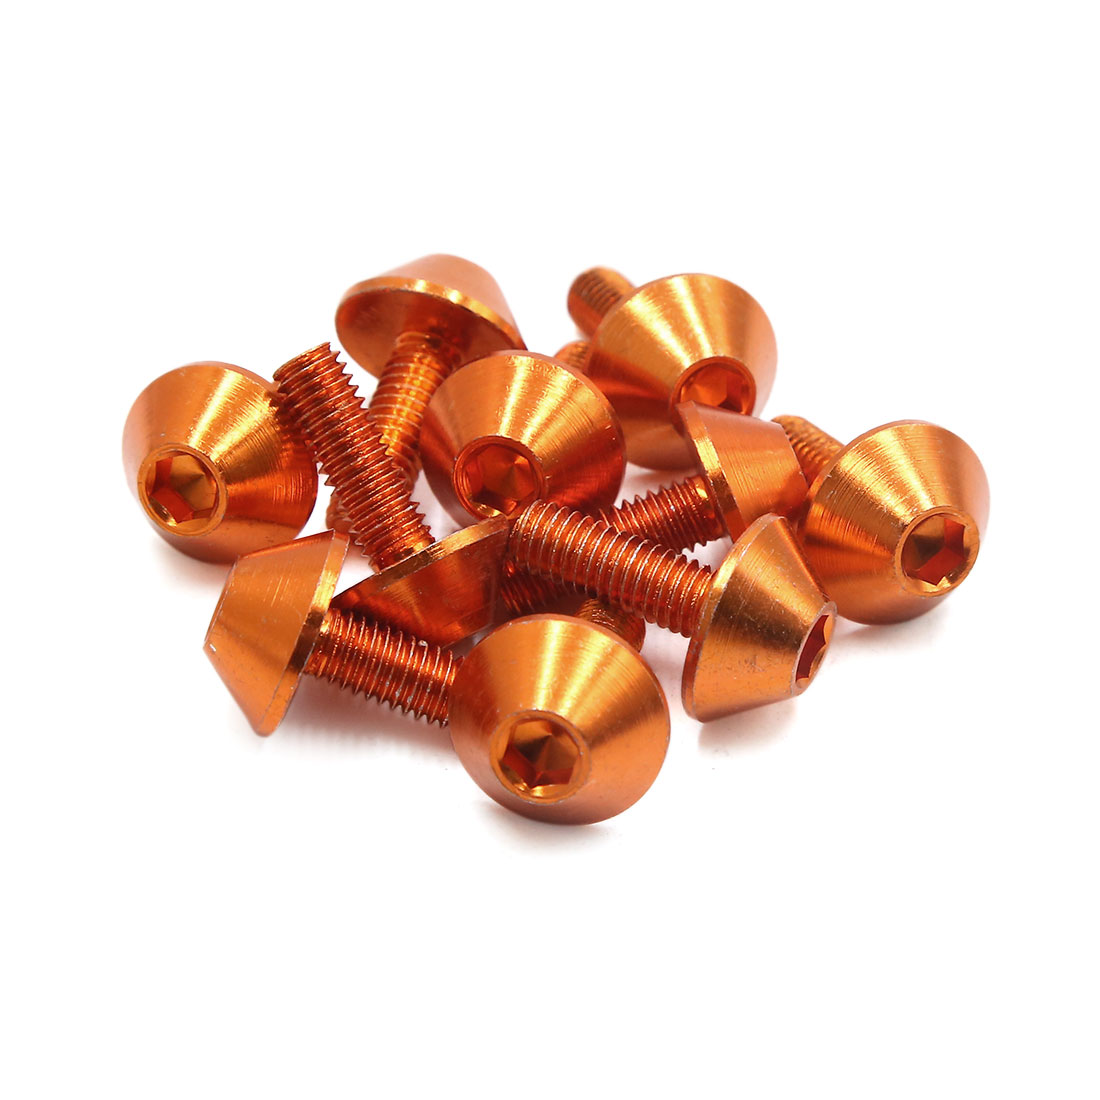 10pcs M6 Orange Aluminum Alloy Hex Socket Head Motorcycle Fairing Fastene Screws